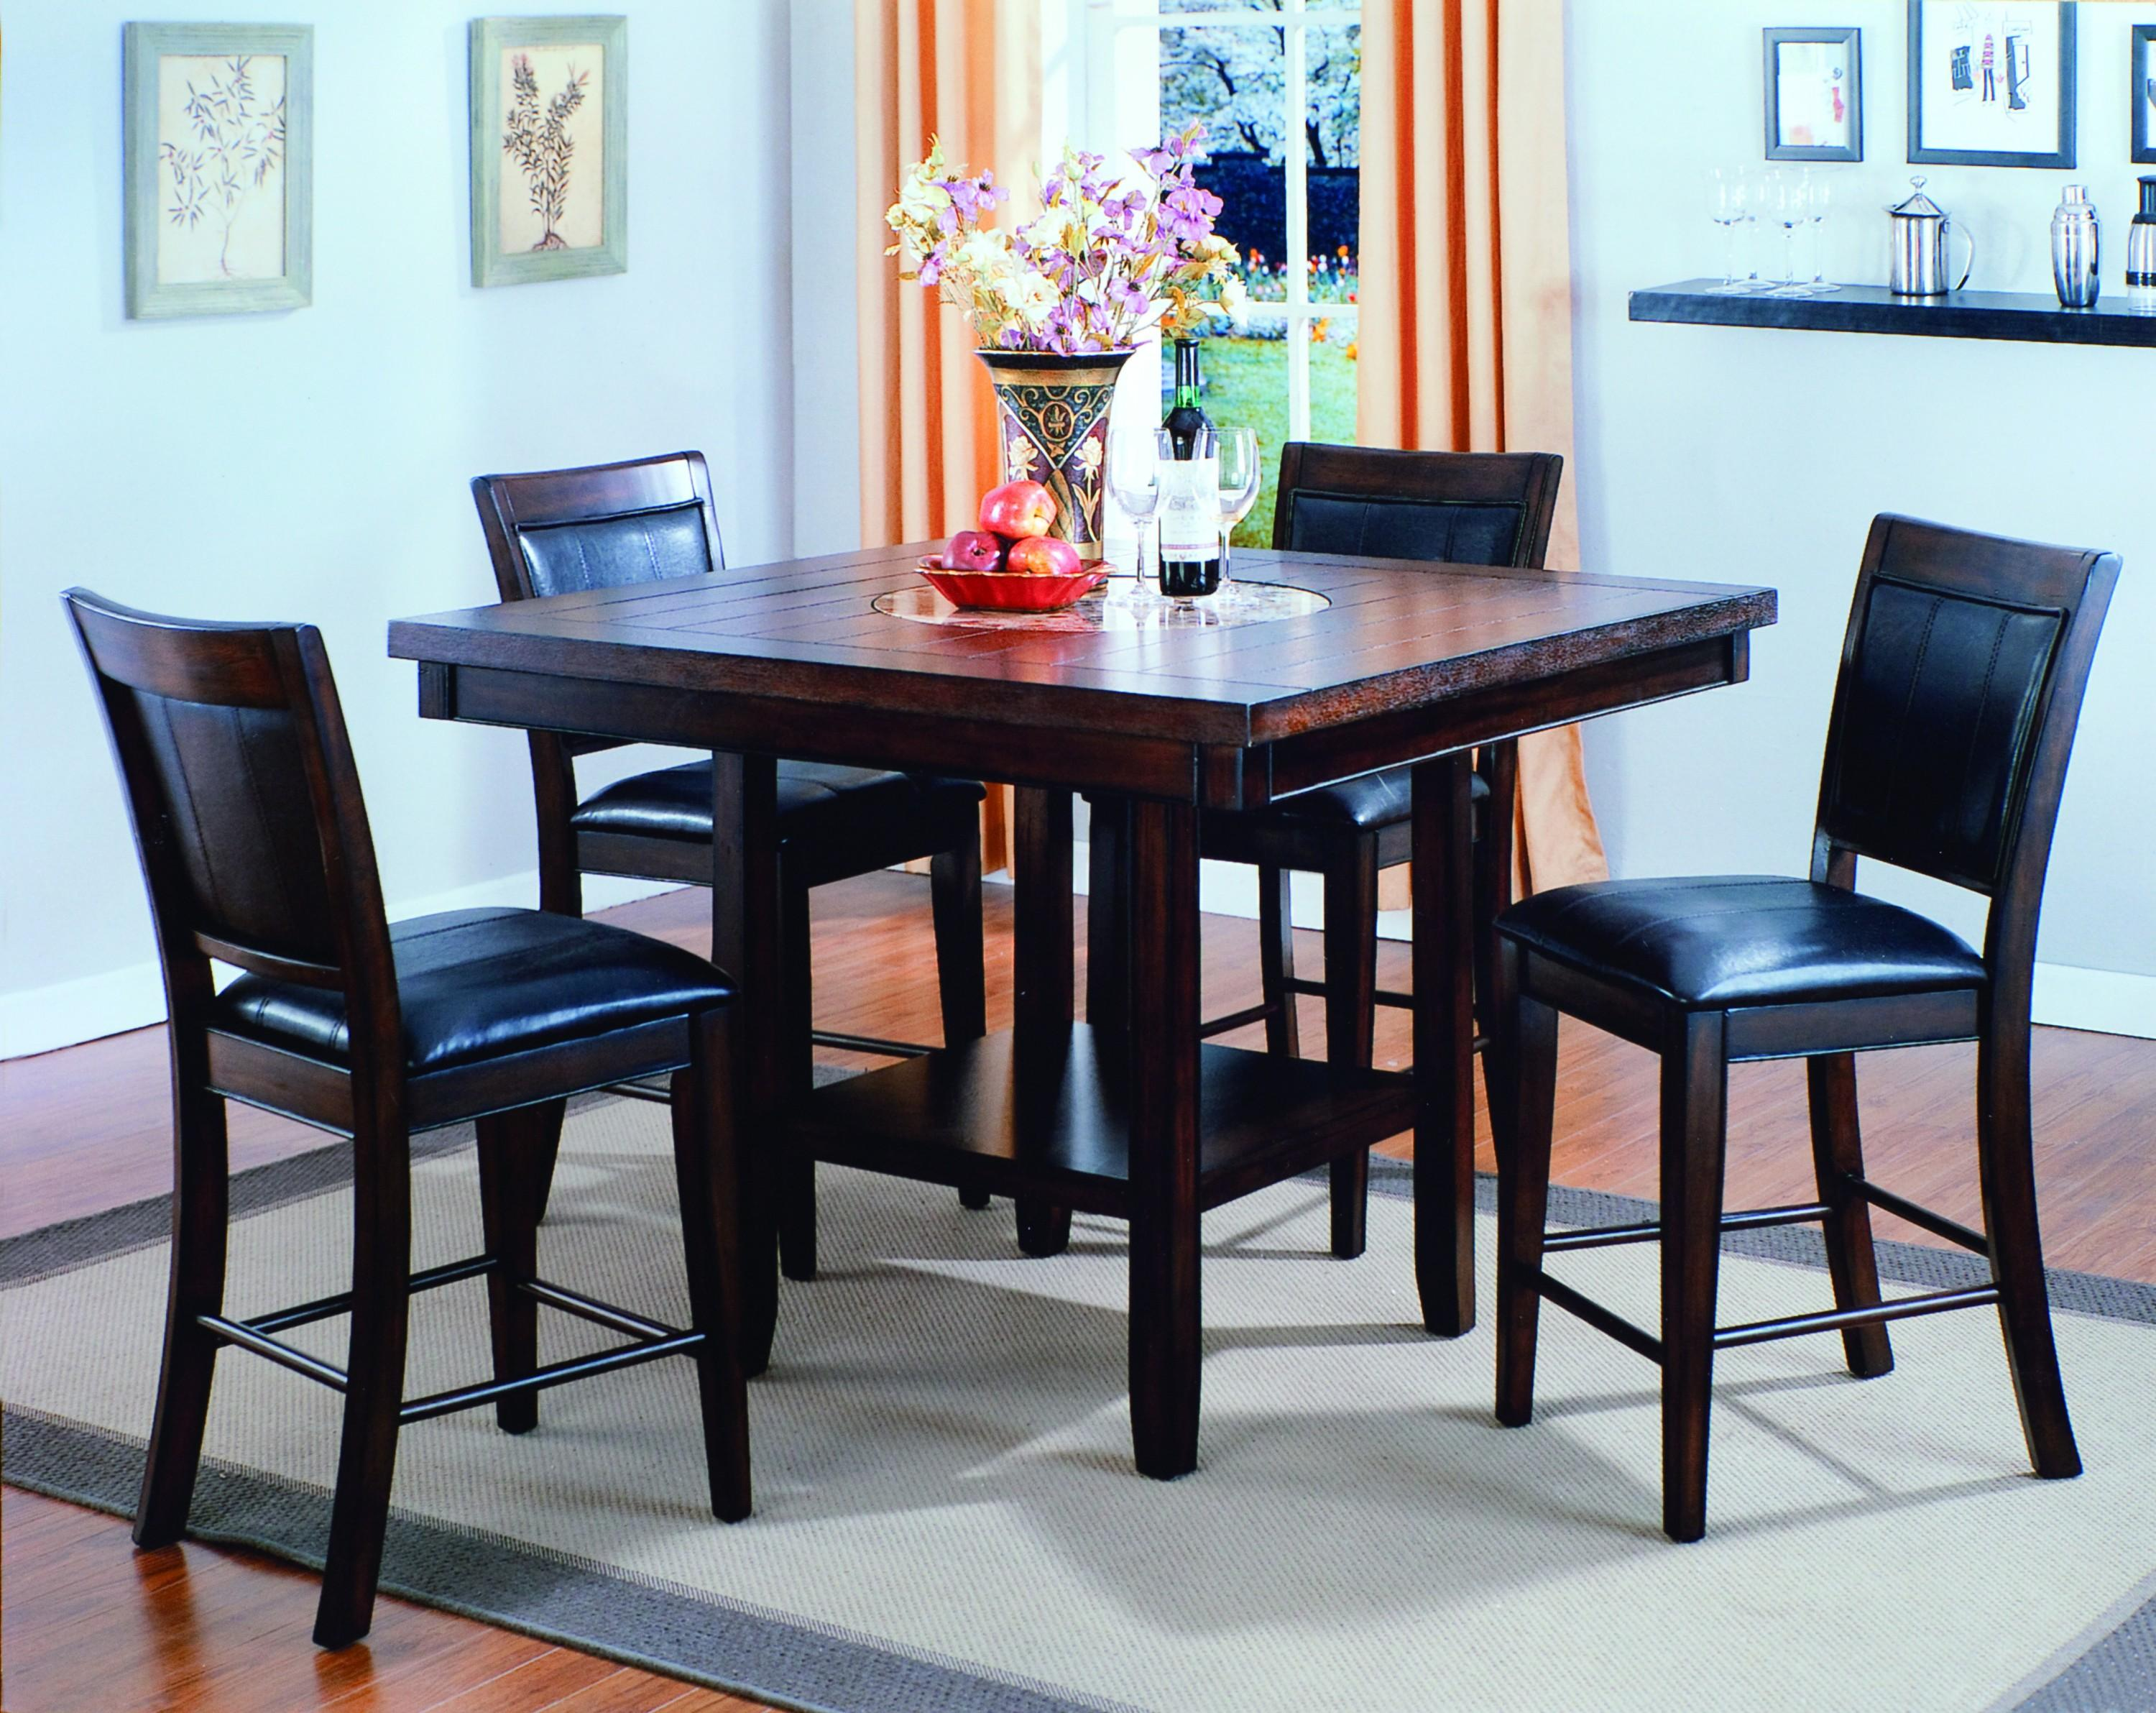 Black Dining Room Table And Chairs Fulton 5 Pc Dining Group By Crown Mark At Royal Furniture